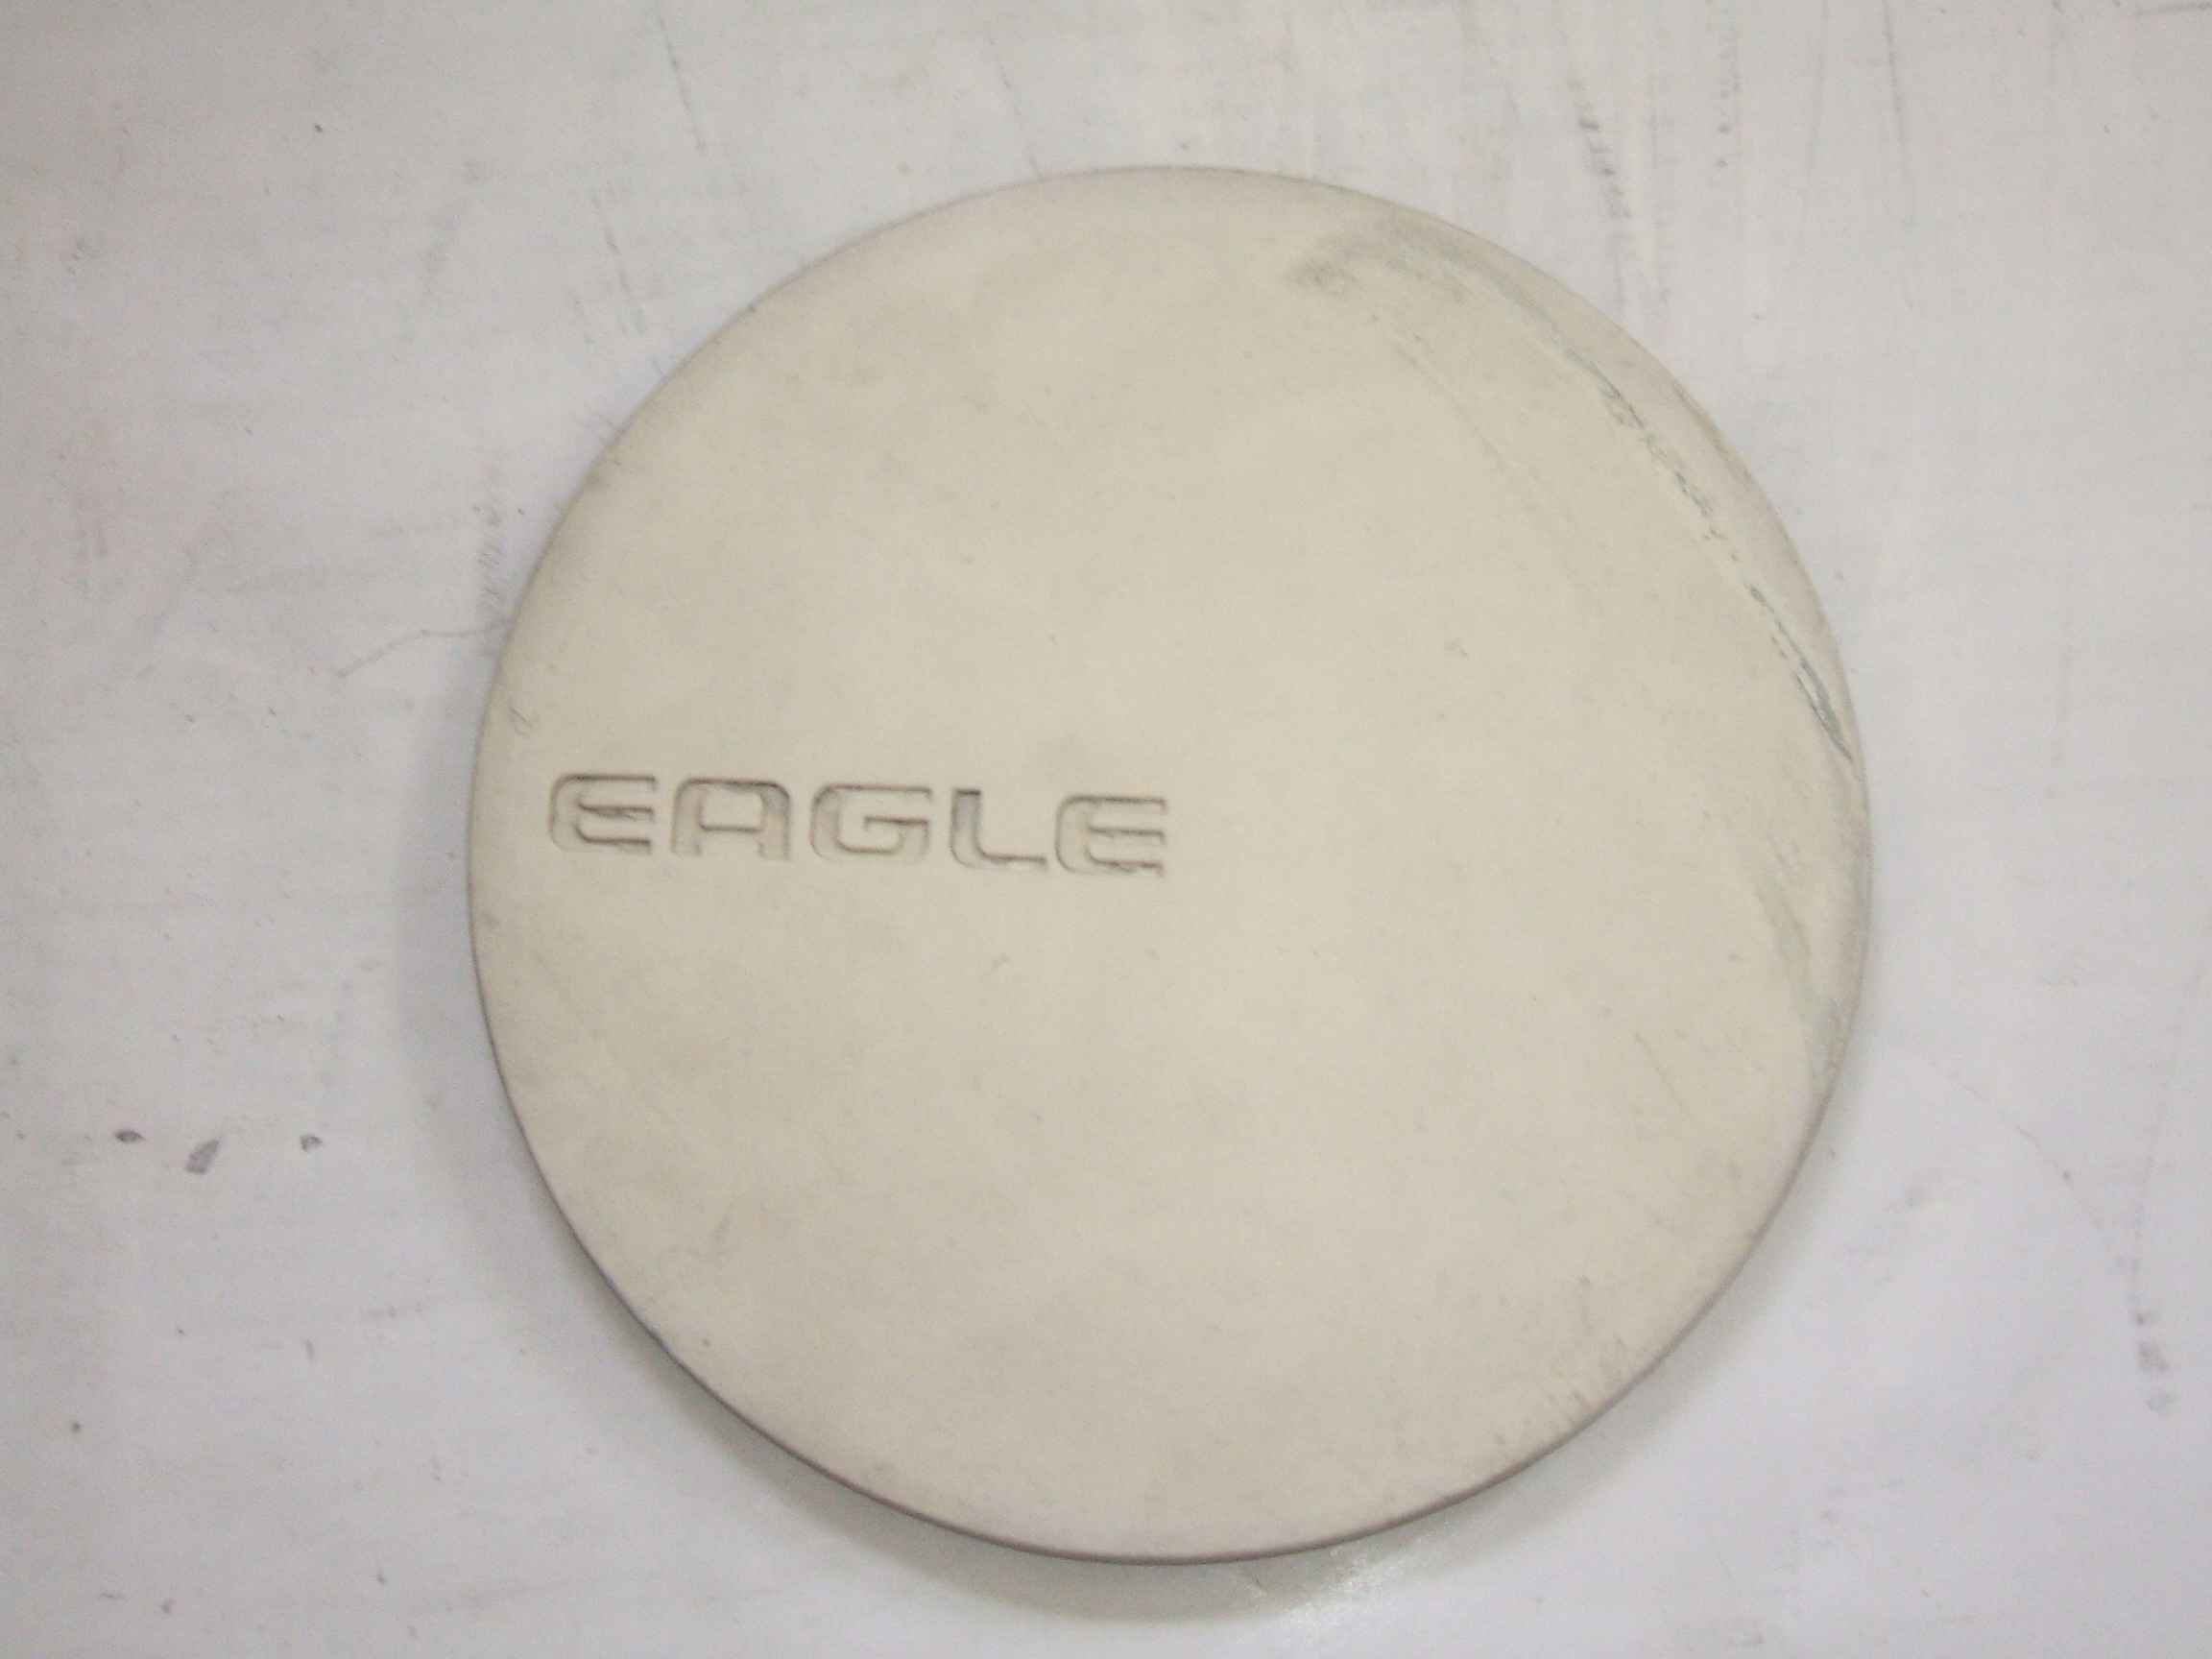 Eagle Premier 89-92 White Center Cap 1684 P/N 4472227